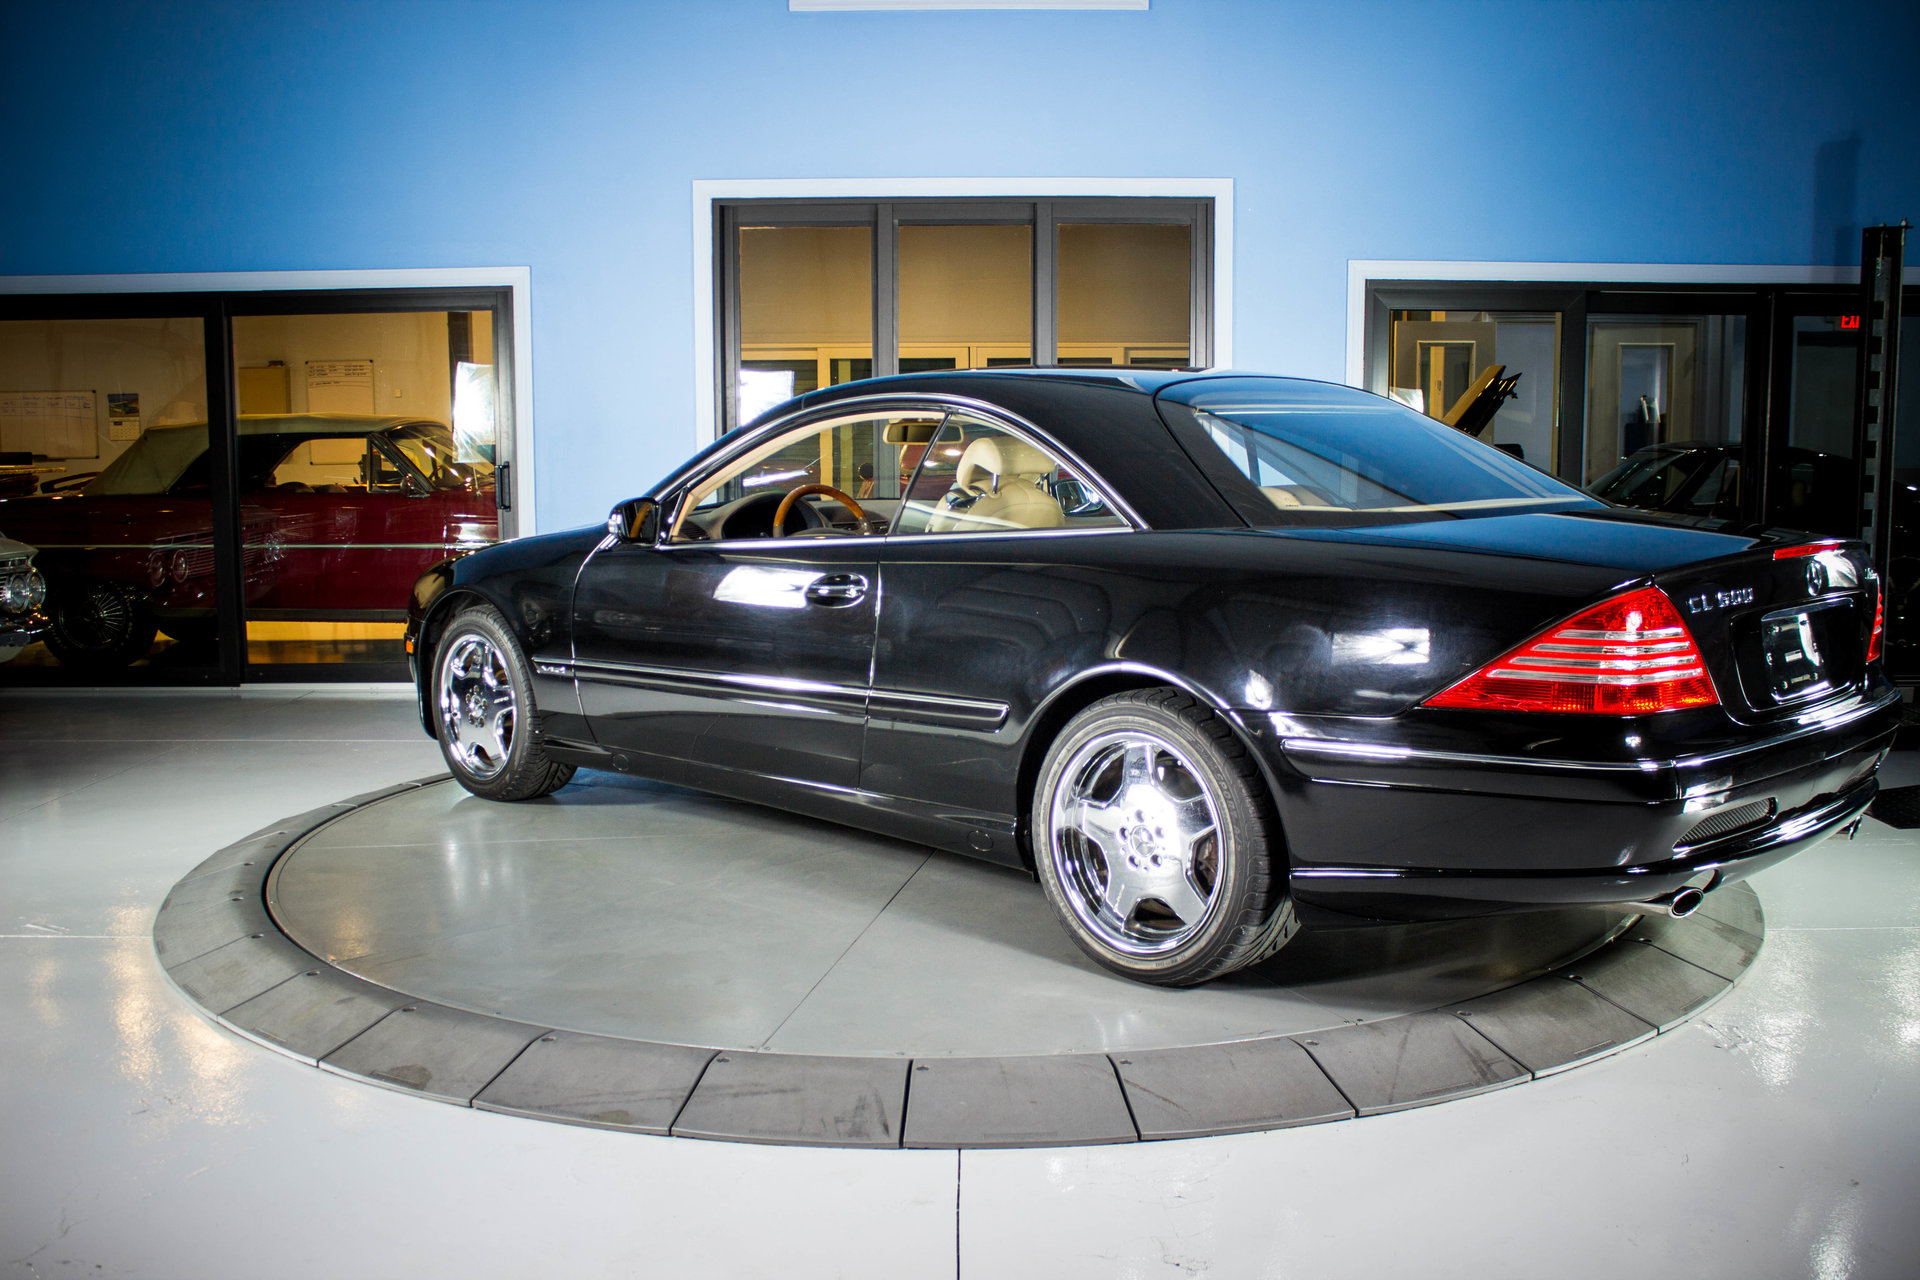 2001 Mercedes Benz CL-600 | Classic Cars & Used Cars For ...